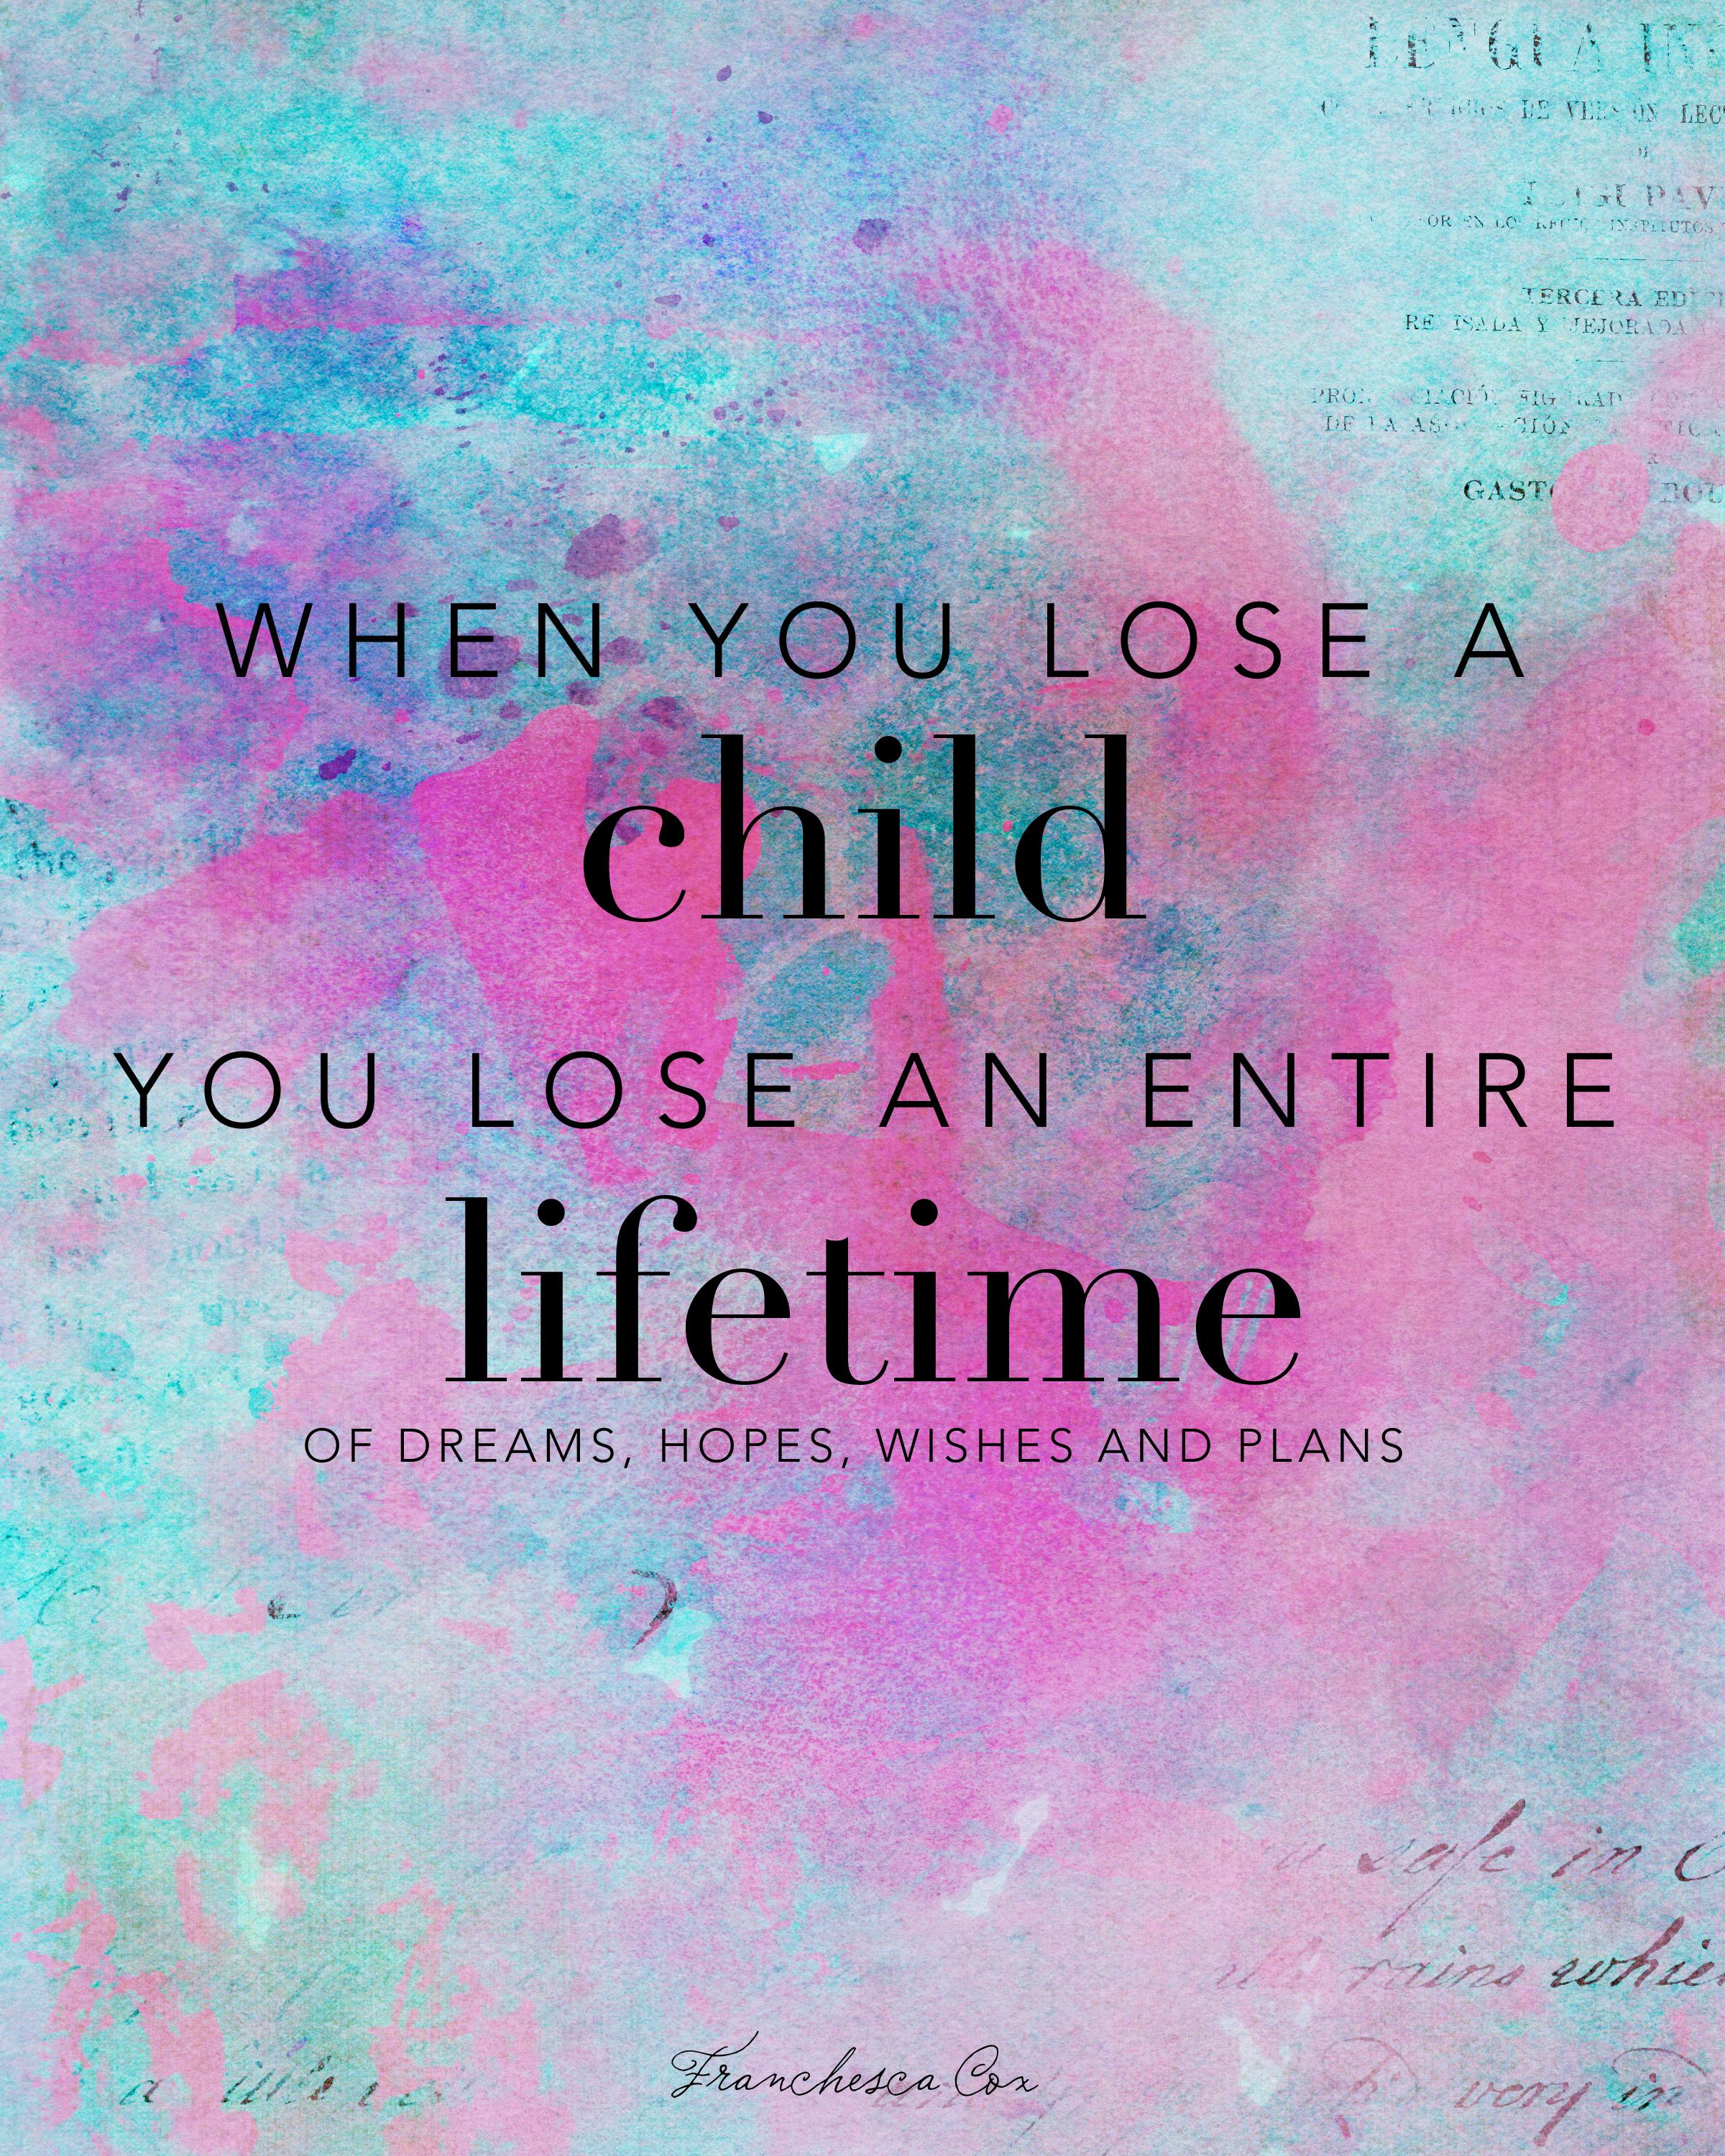 Quotes About Losing A Child Enchanting When You Lose A Child You Lose An Entire Lifetime Of Dreams Hopes